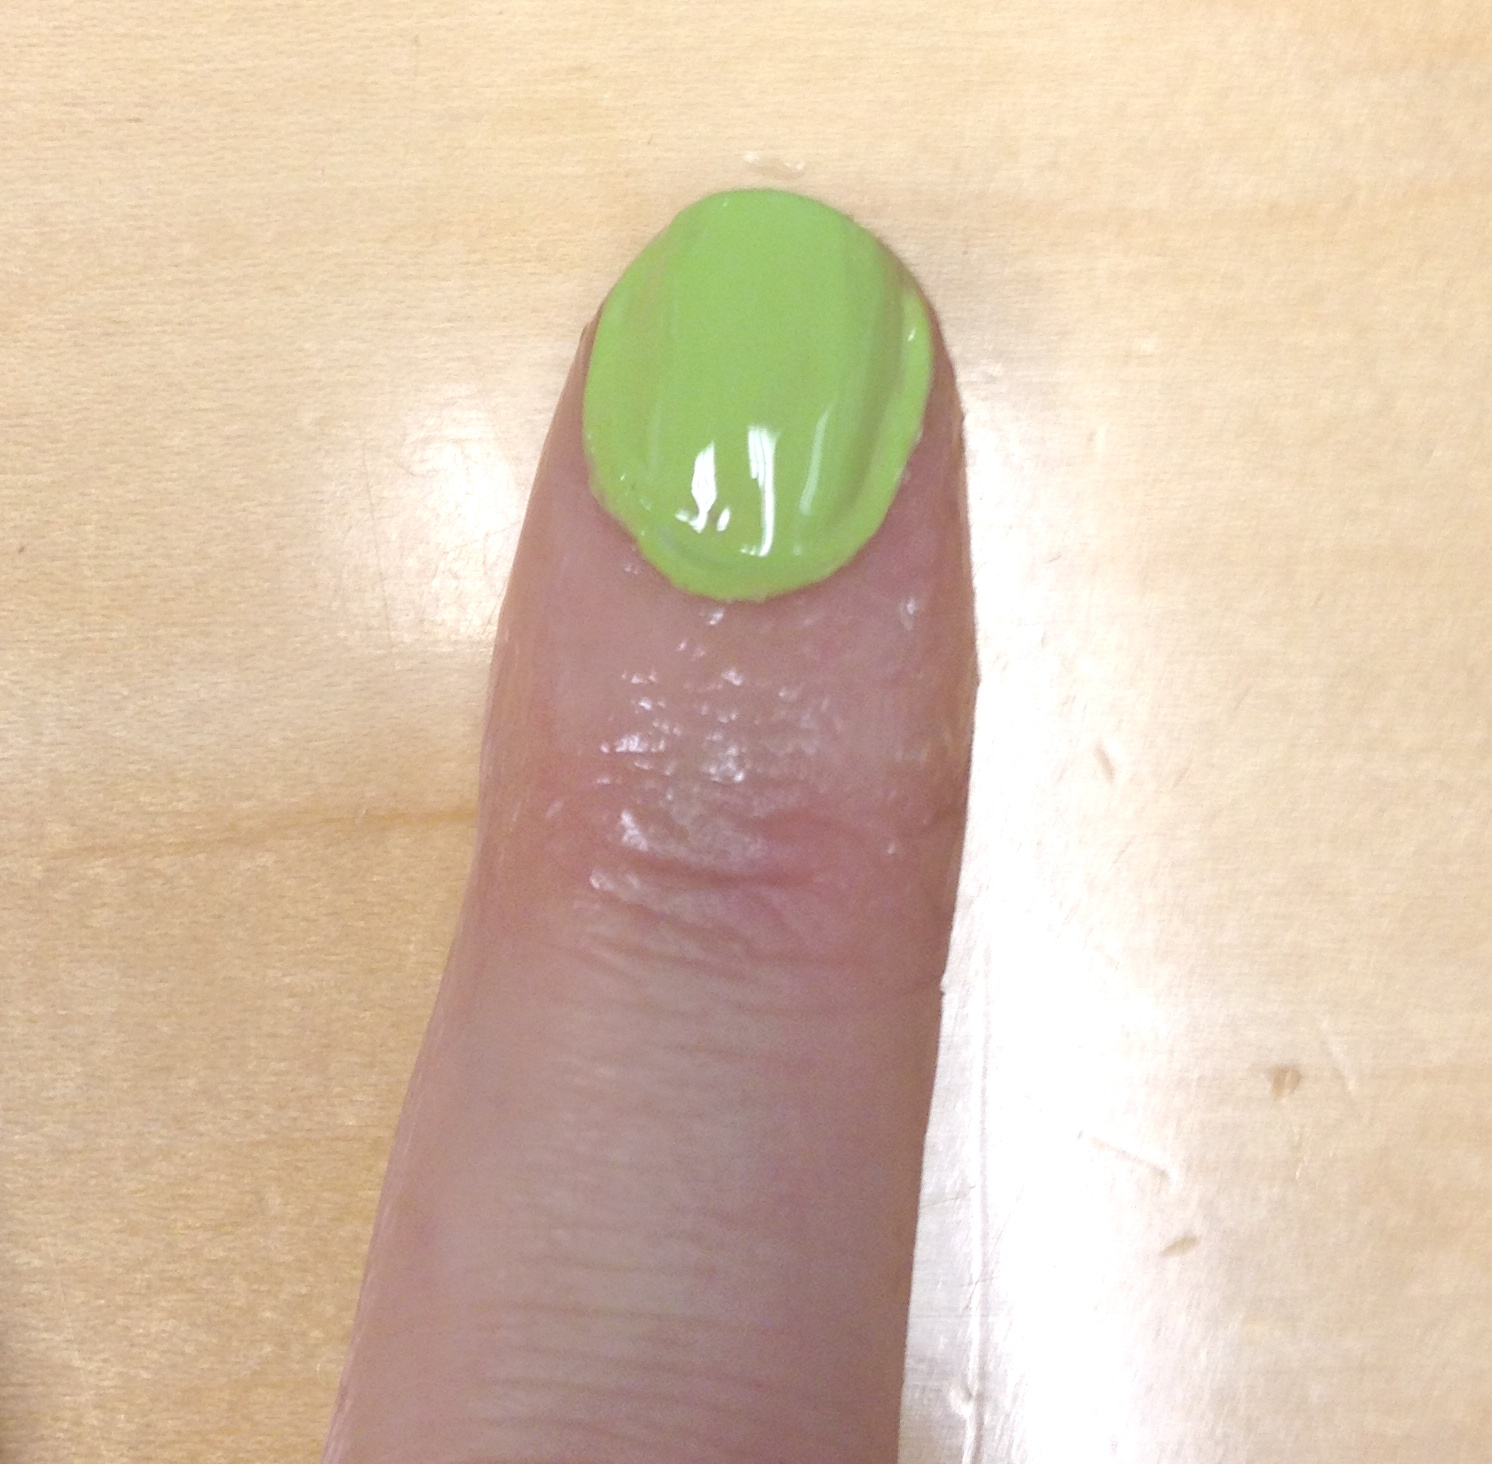 photo of Kym's fingernail with green polish applied haphazardly